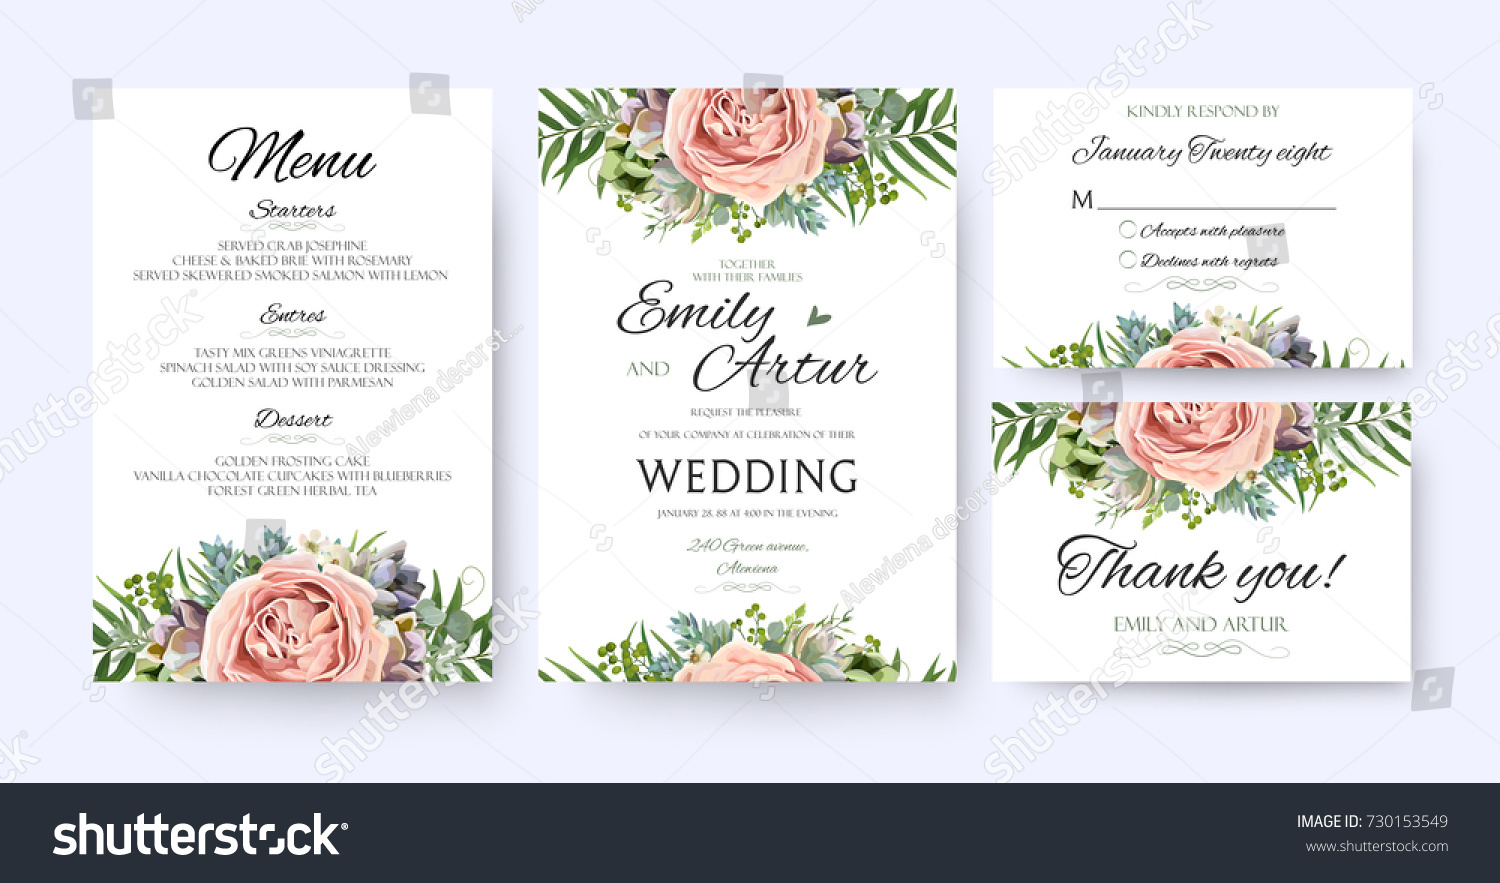 stock vector wedding invitation floral invite card design garden lavender pink peach rose succulent wax green 730153549